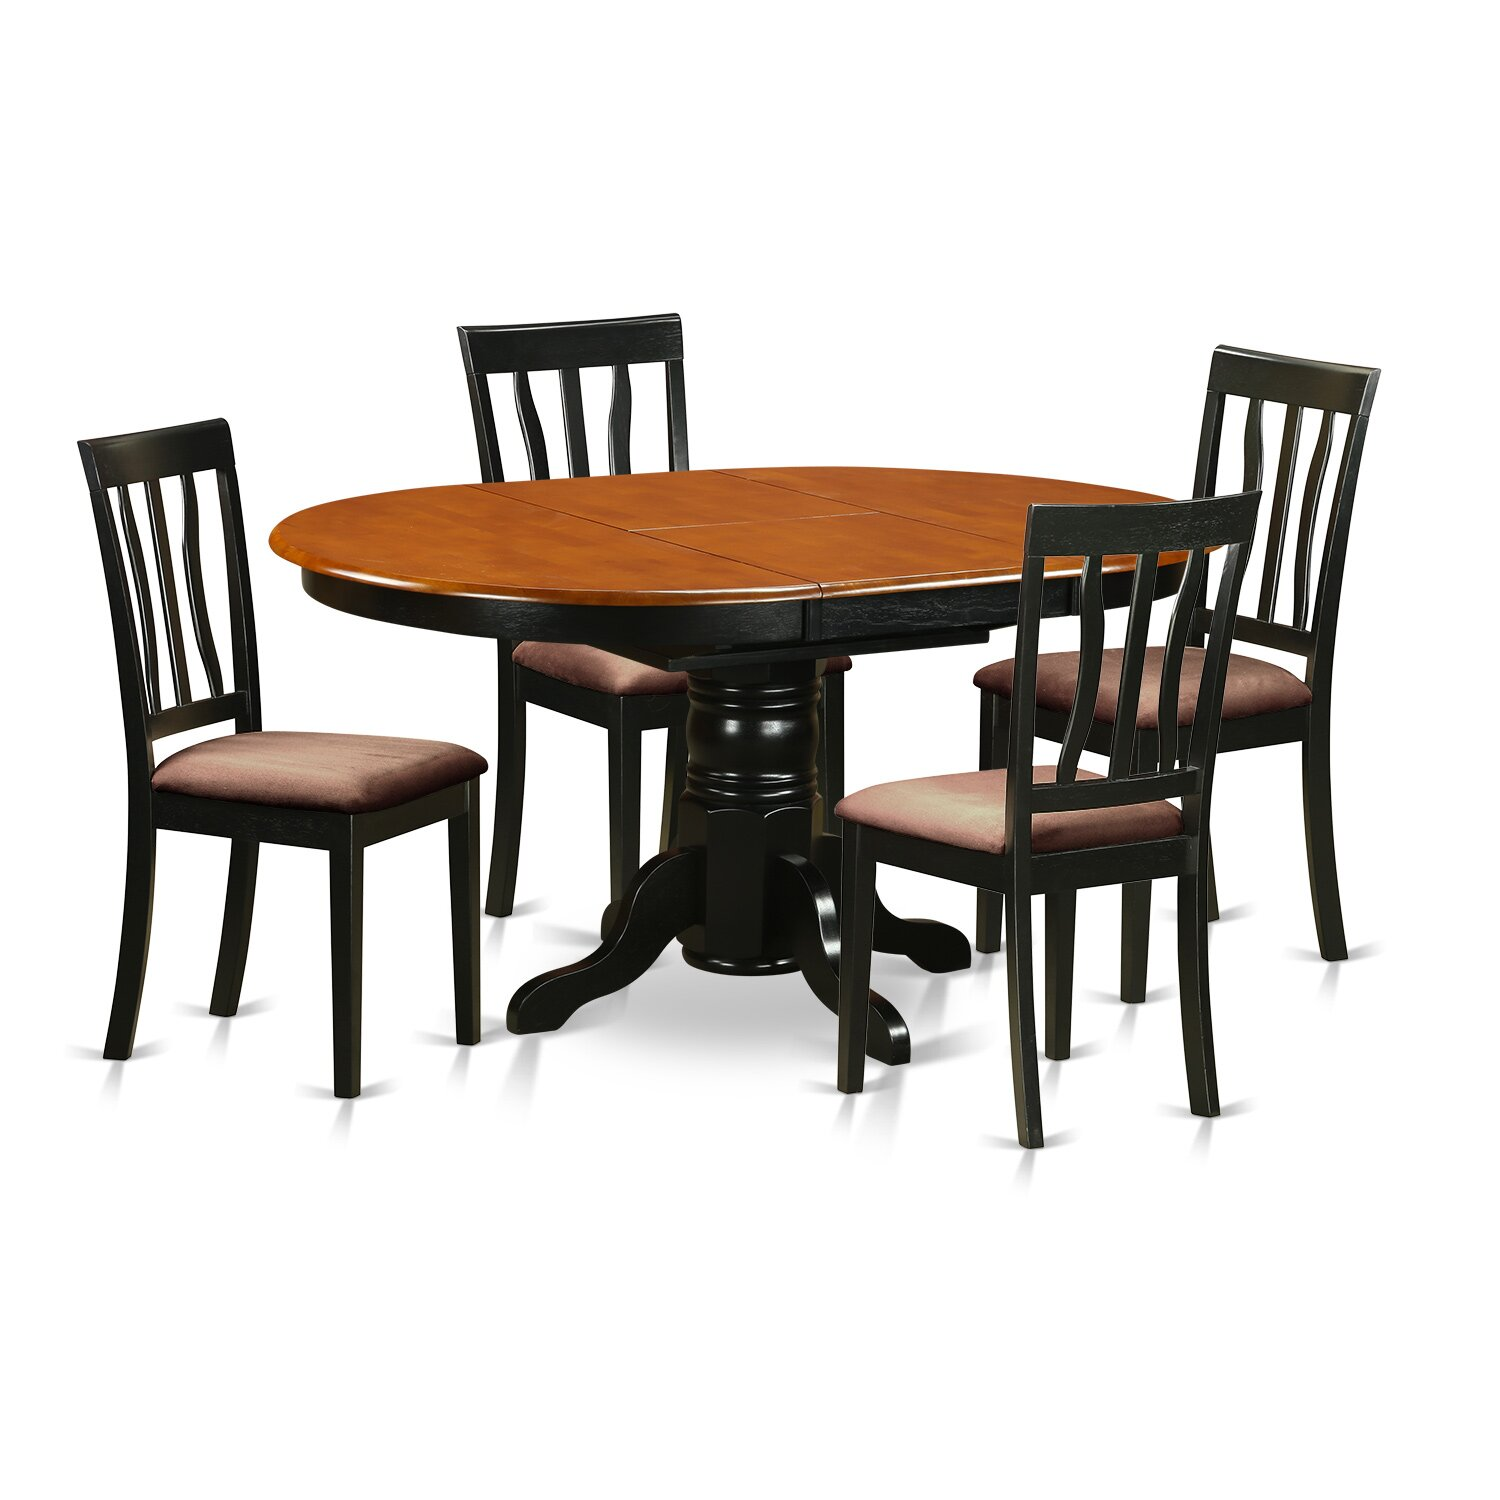 Dining Room Sets Wood: Wooden Importers Avon 5 Piece Dining Set